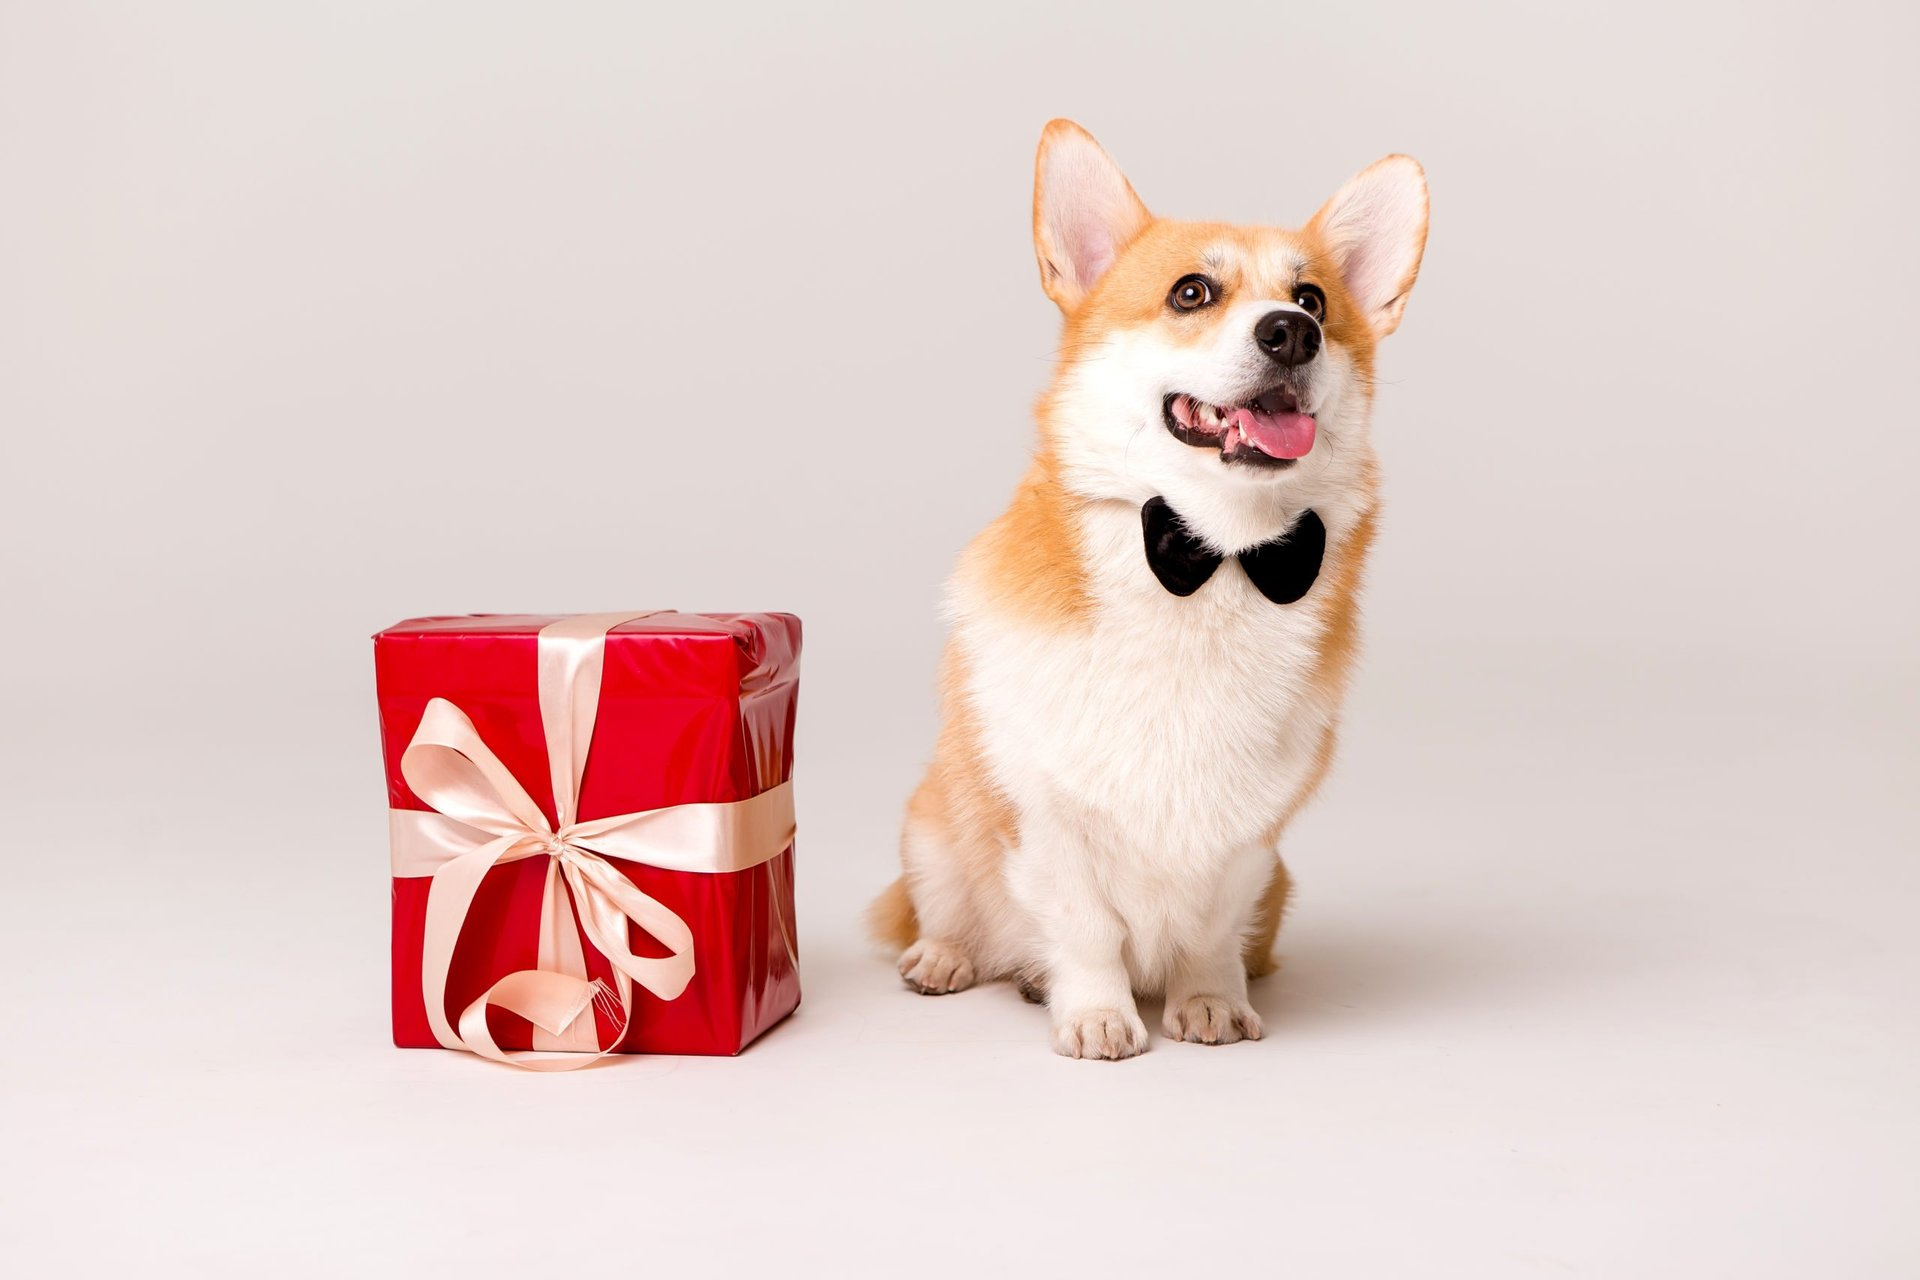 Dog next to a gift